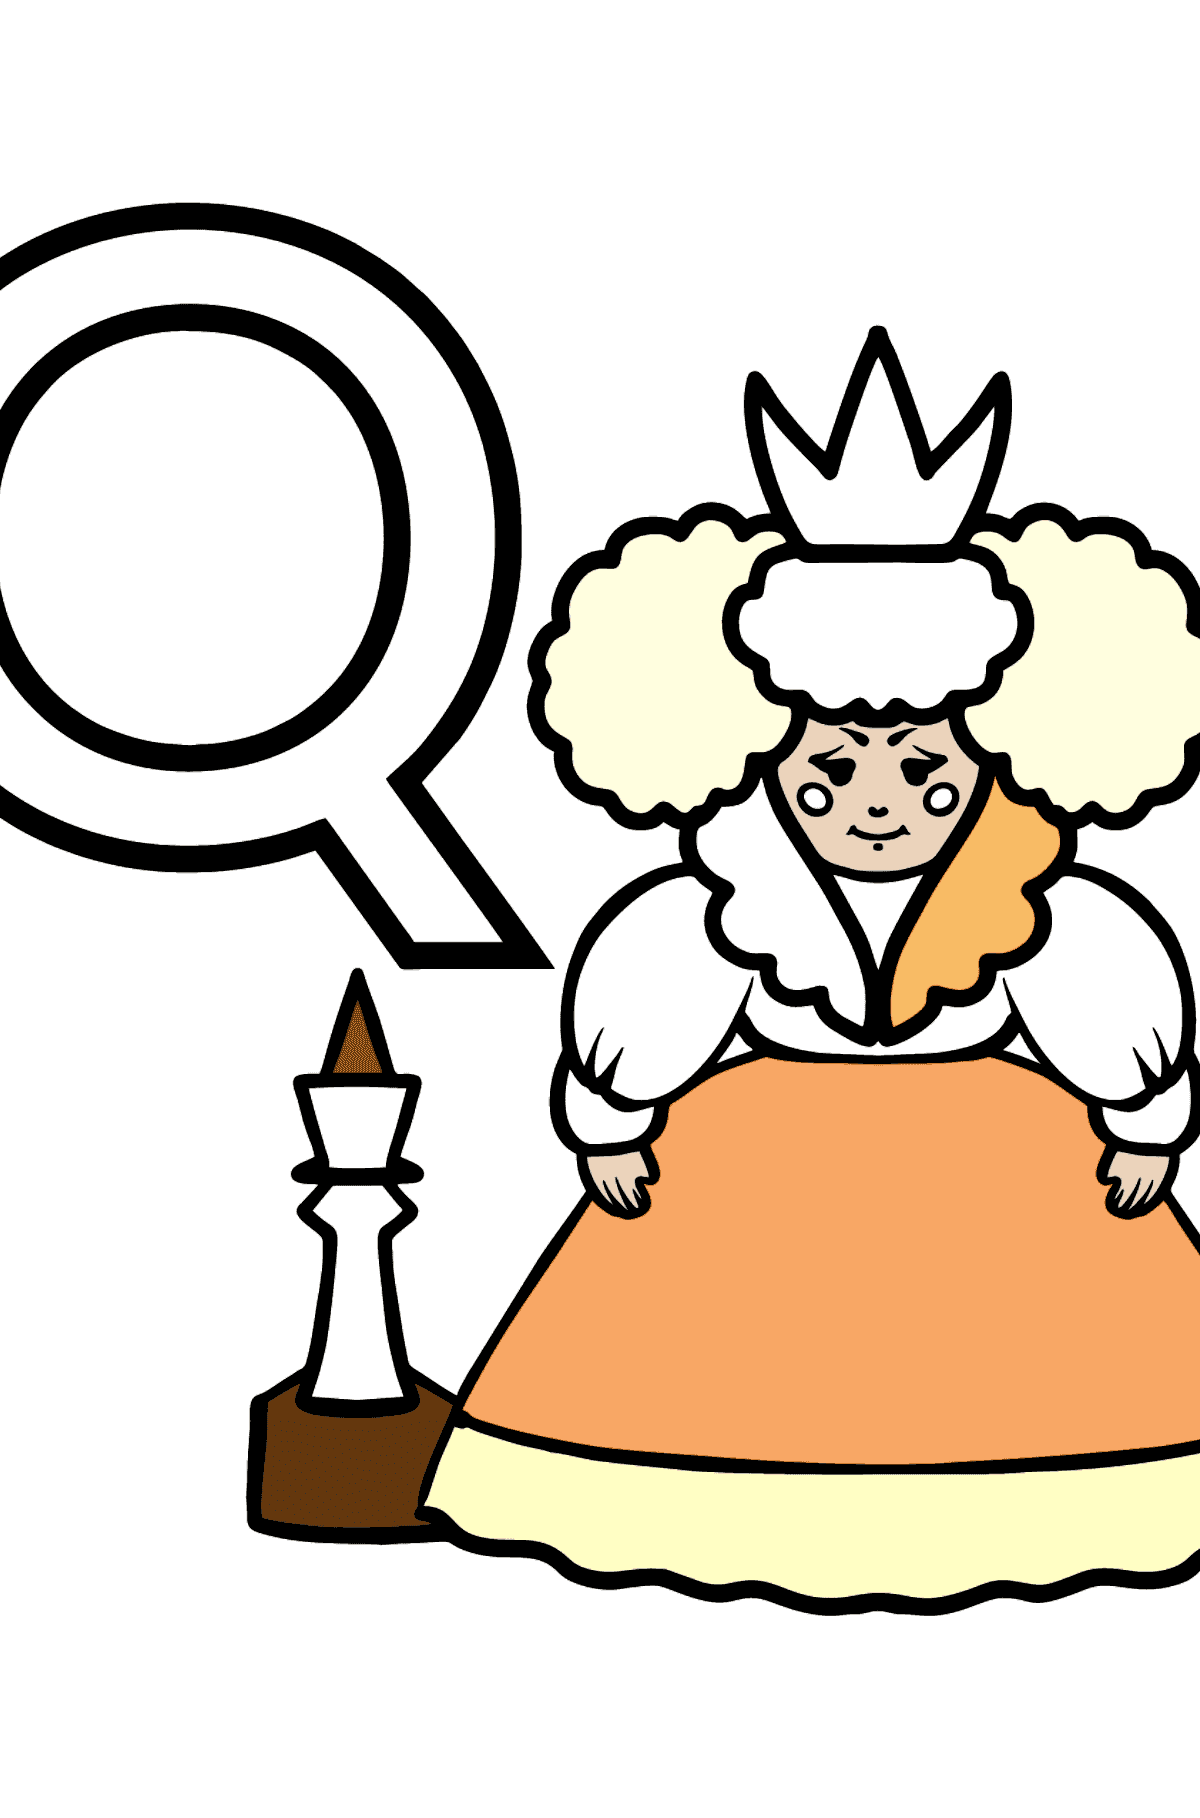 English Letter Q coloring pages - QUEEN - Coloring Pages for Kids